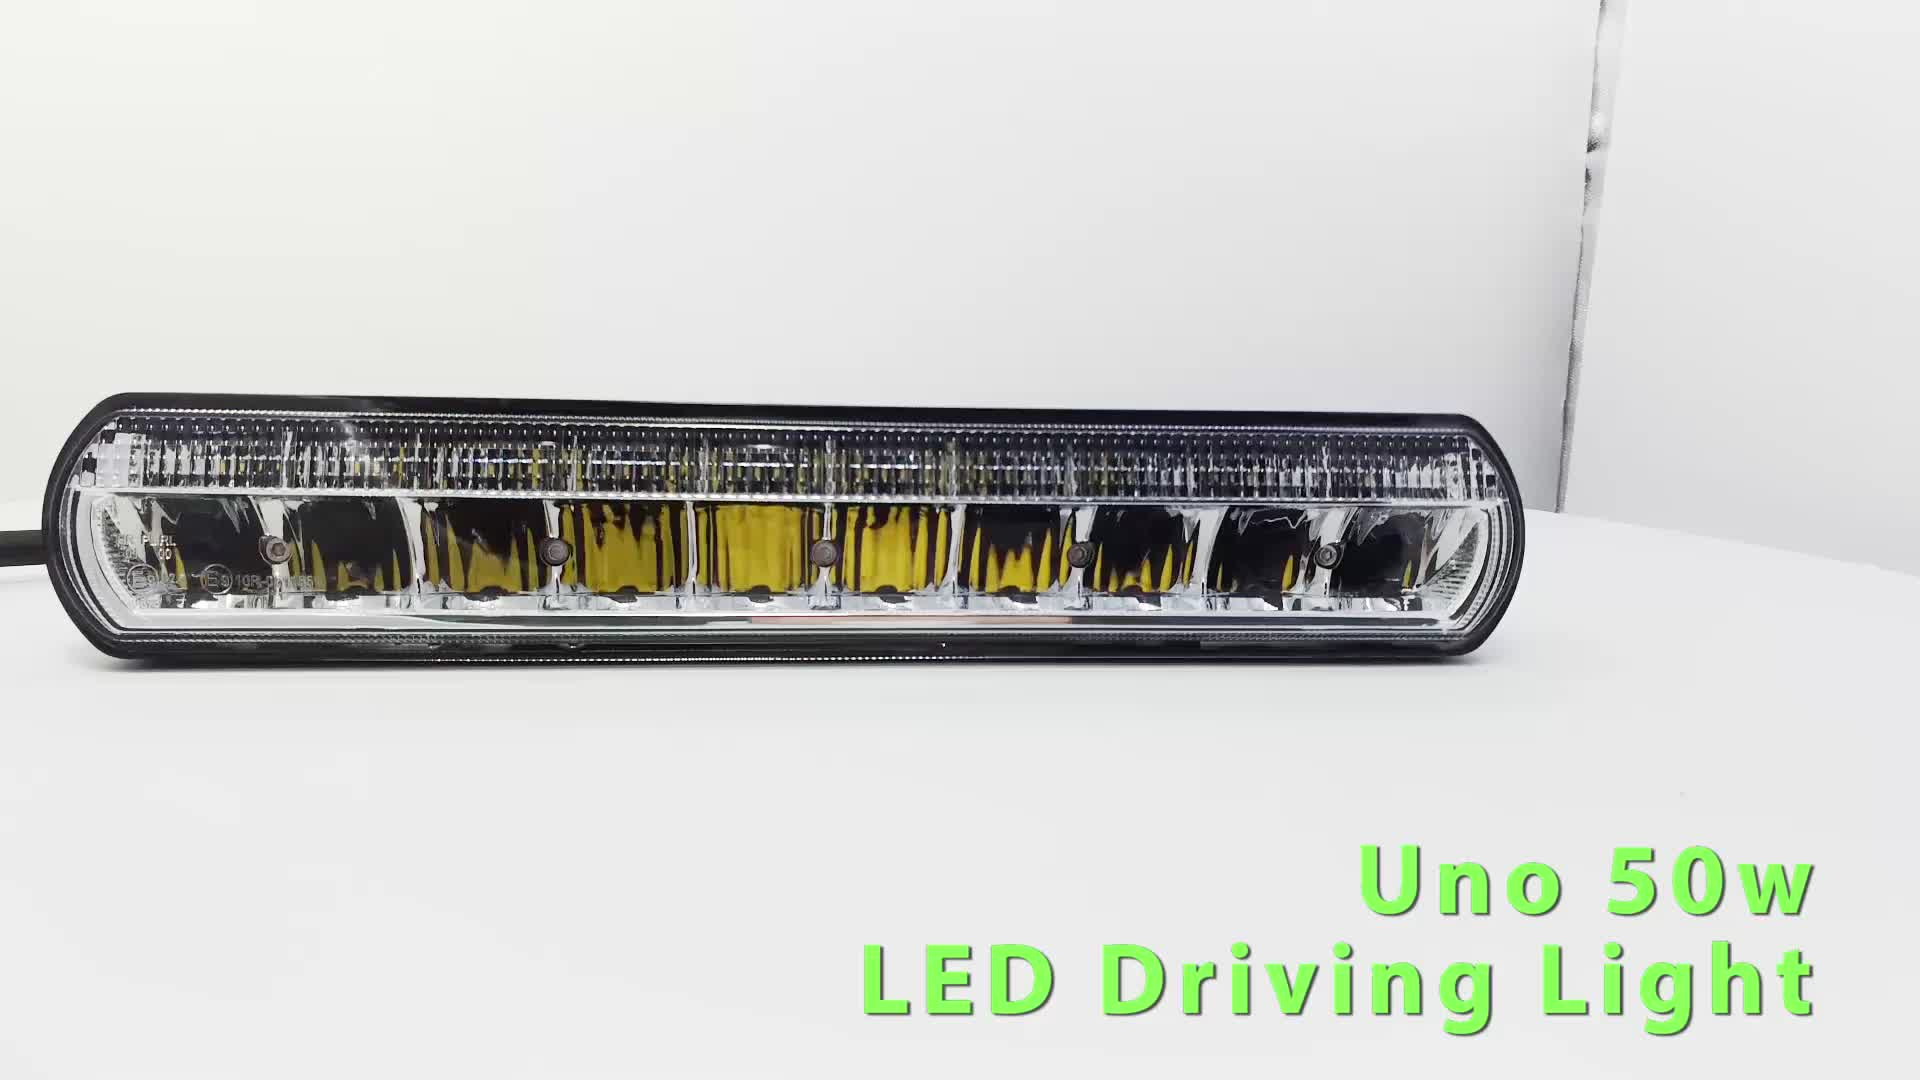 Uno Or Duo Row 50W 100W R112 R10 R87 LED Driving Light